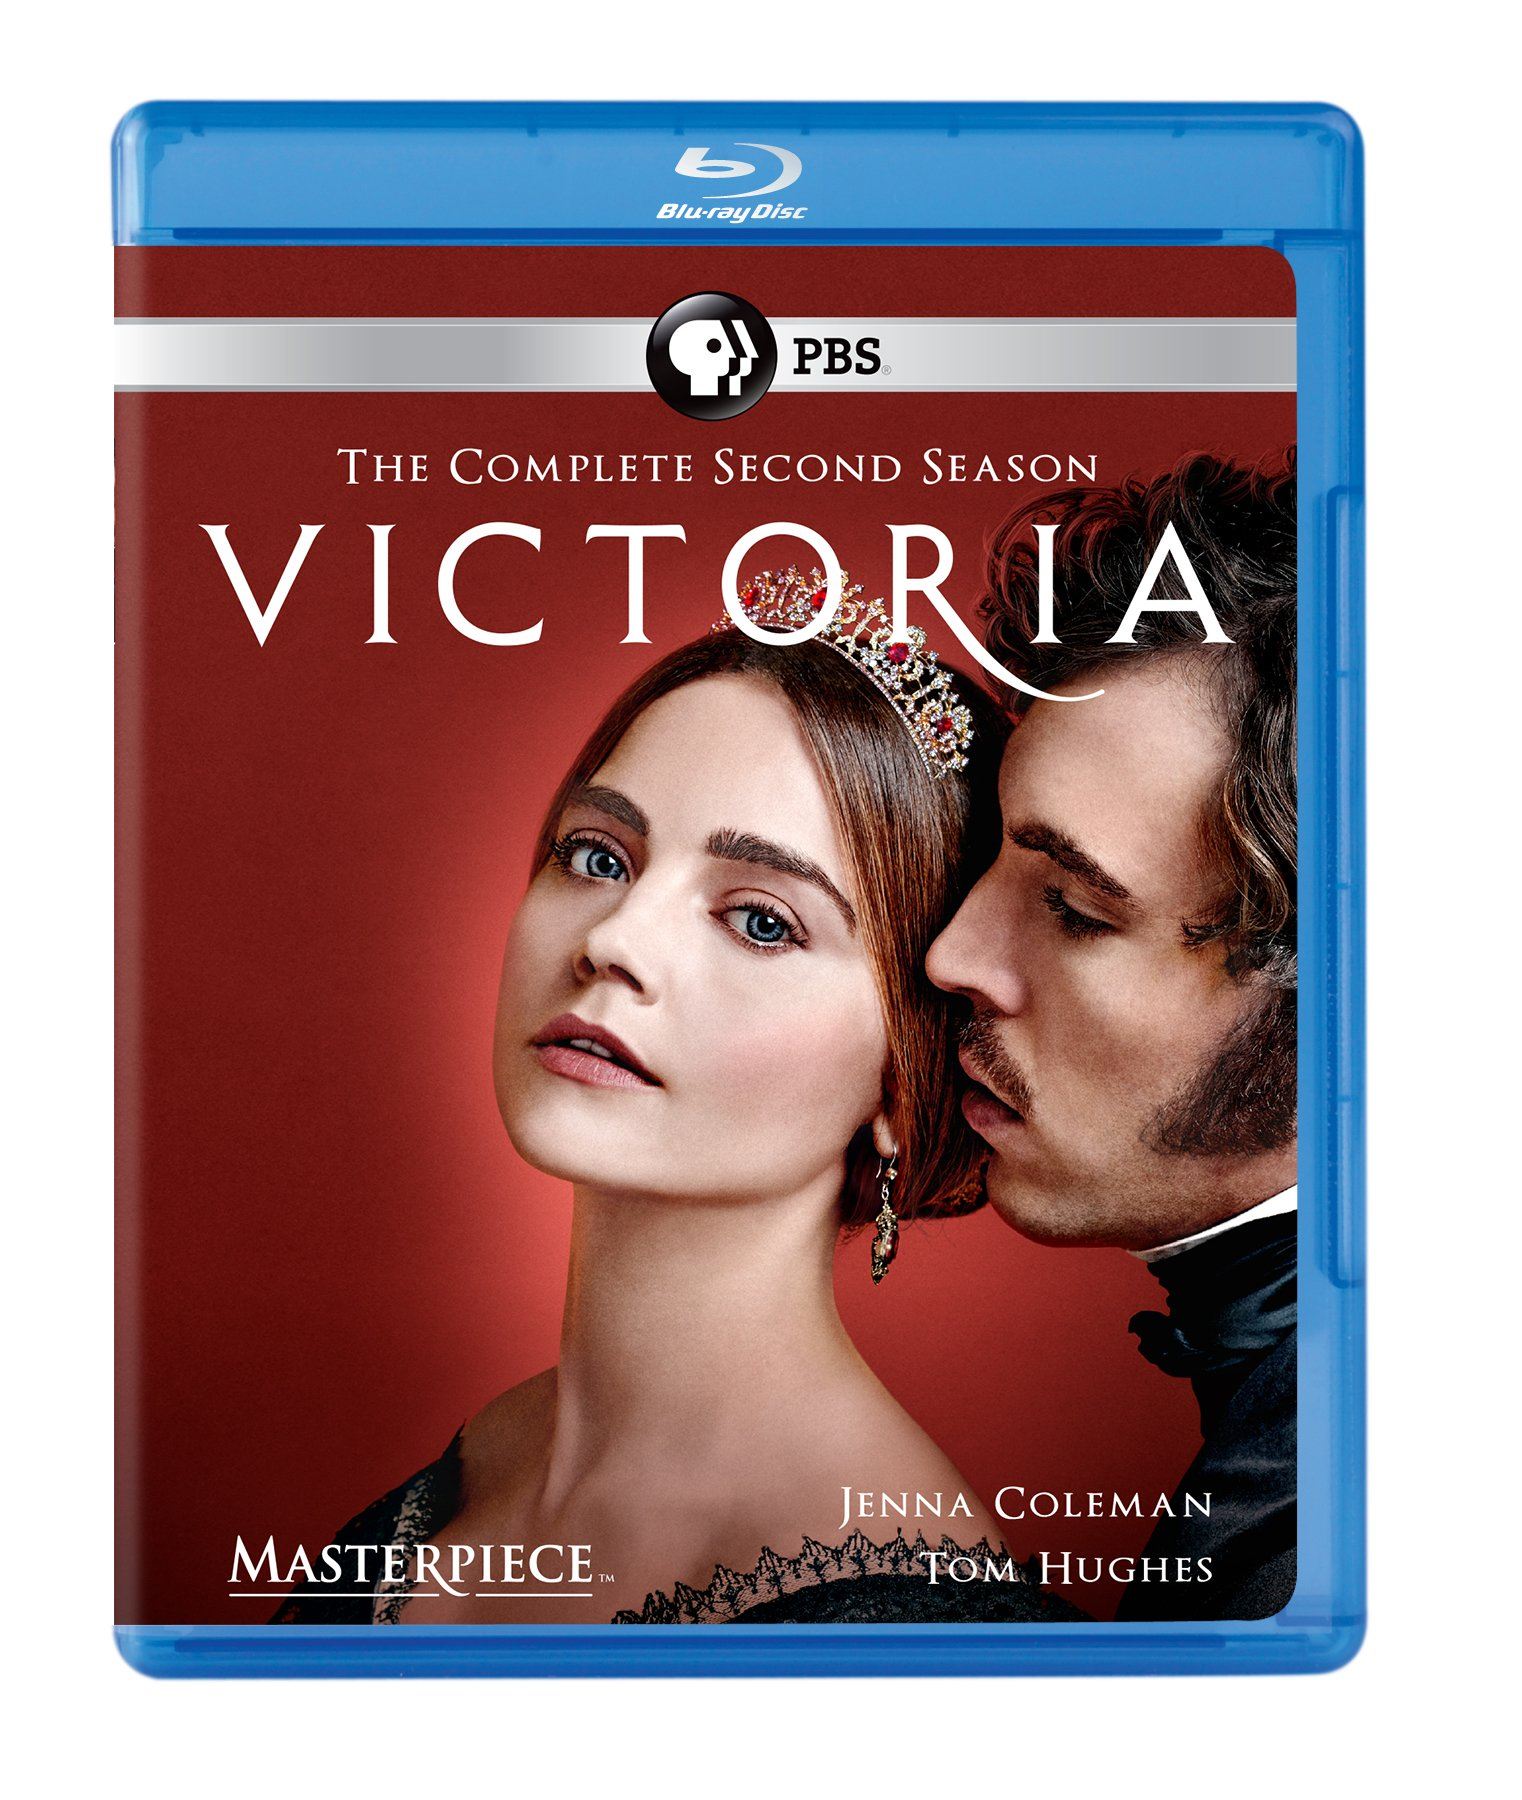 Blu-ray : Victoria: The Complete Second Season (Masterpiece) (3 Pack, 3 Disc)